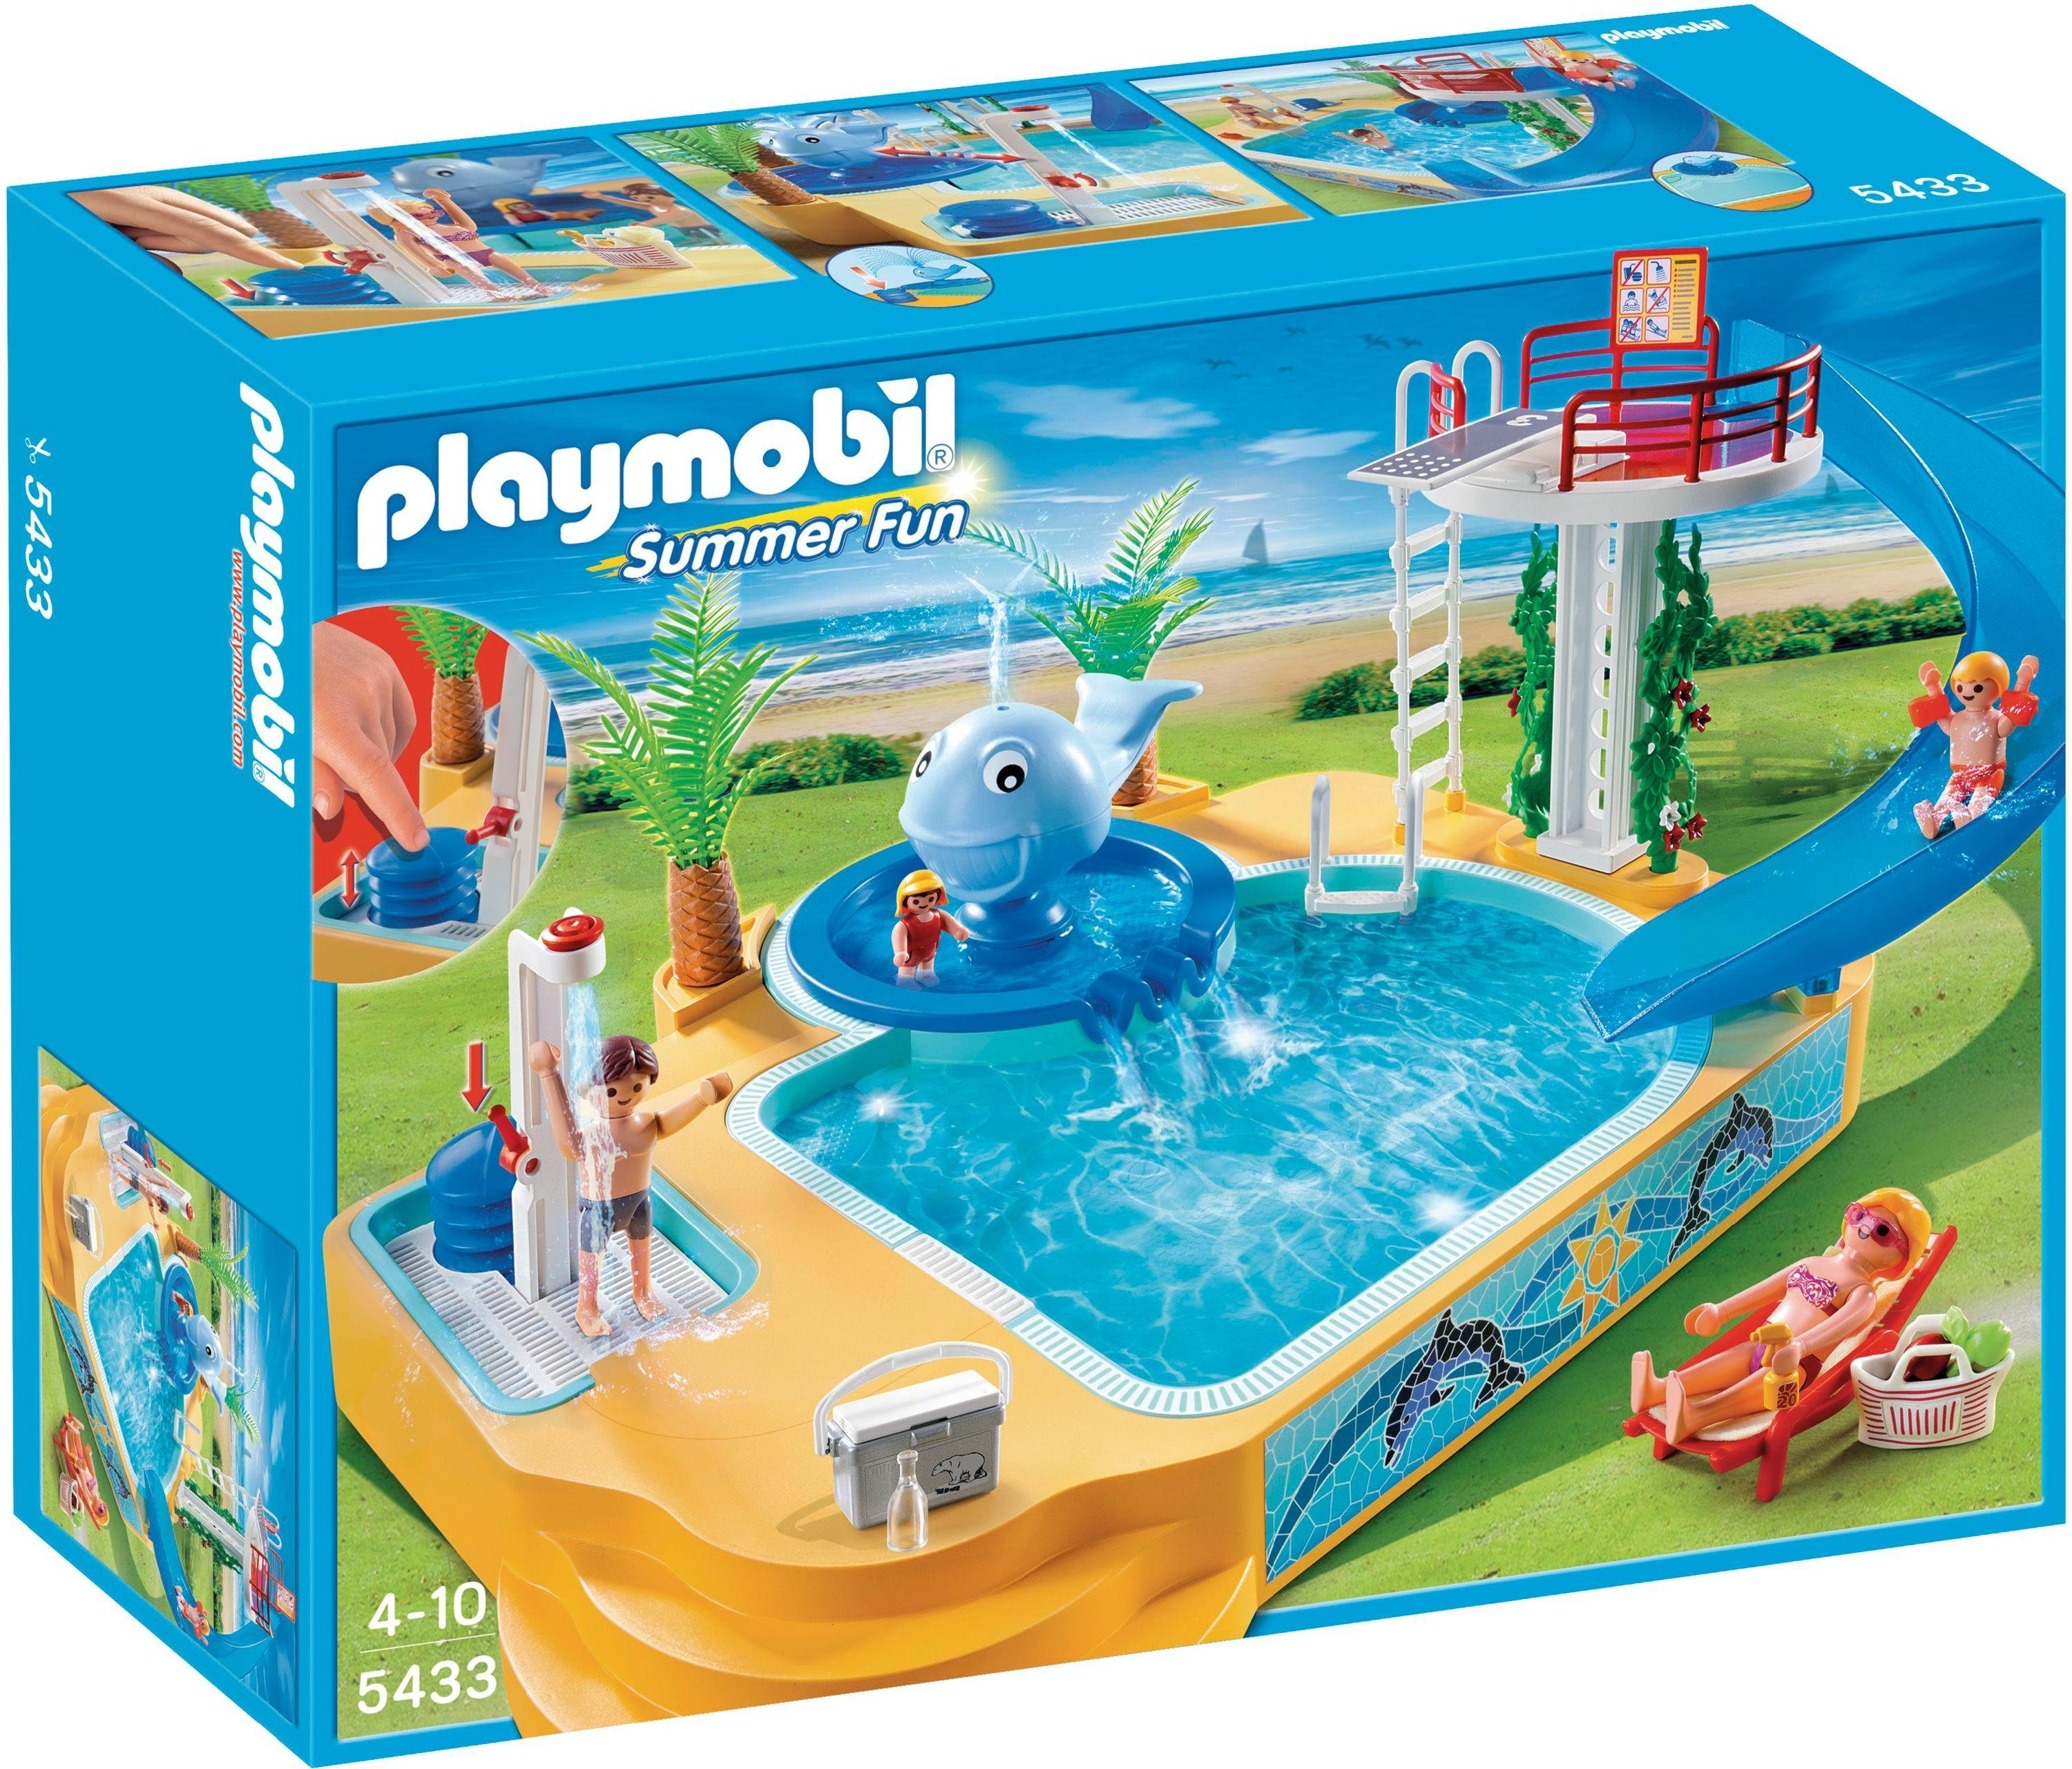 Playmobil Pool And Water Slide 4858 Toys For Christmas Toys Compare And Save